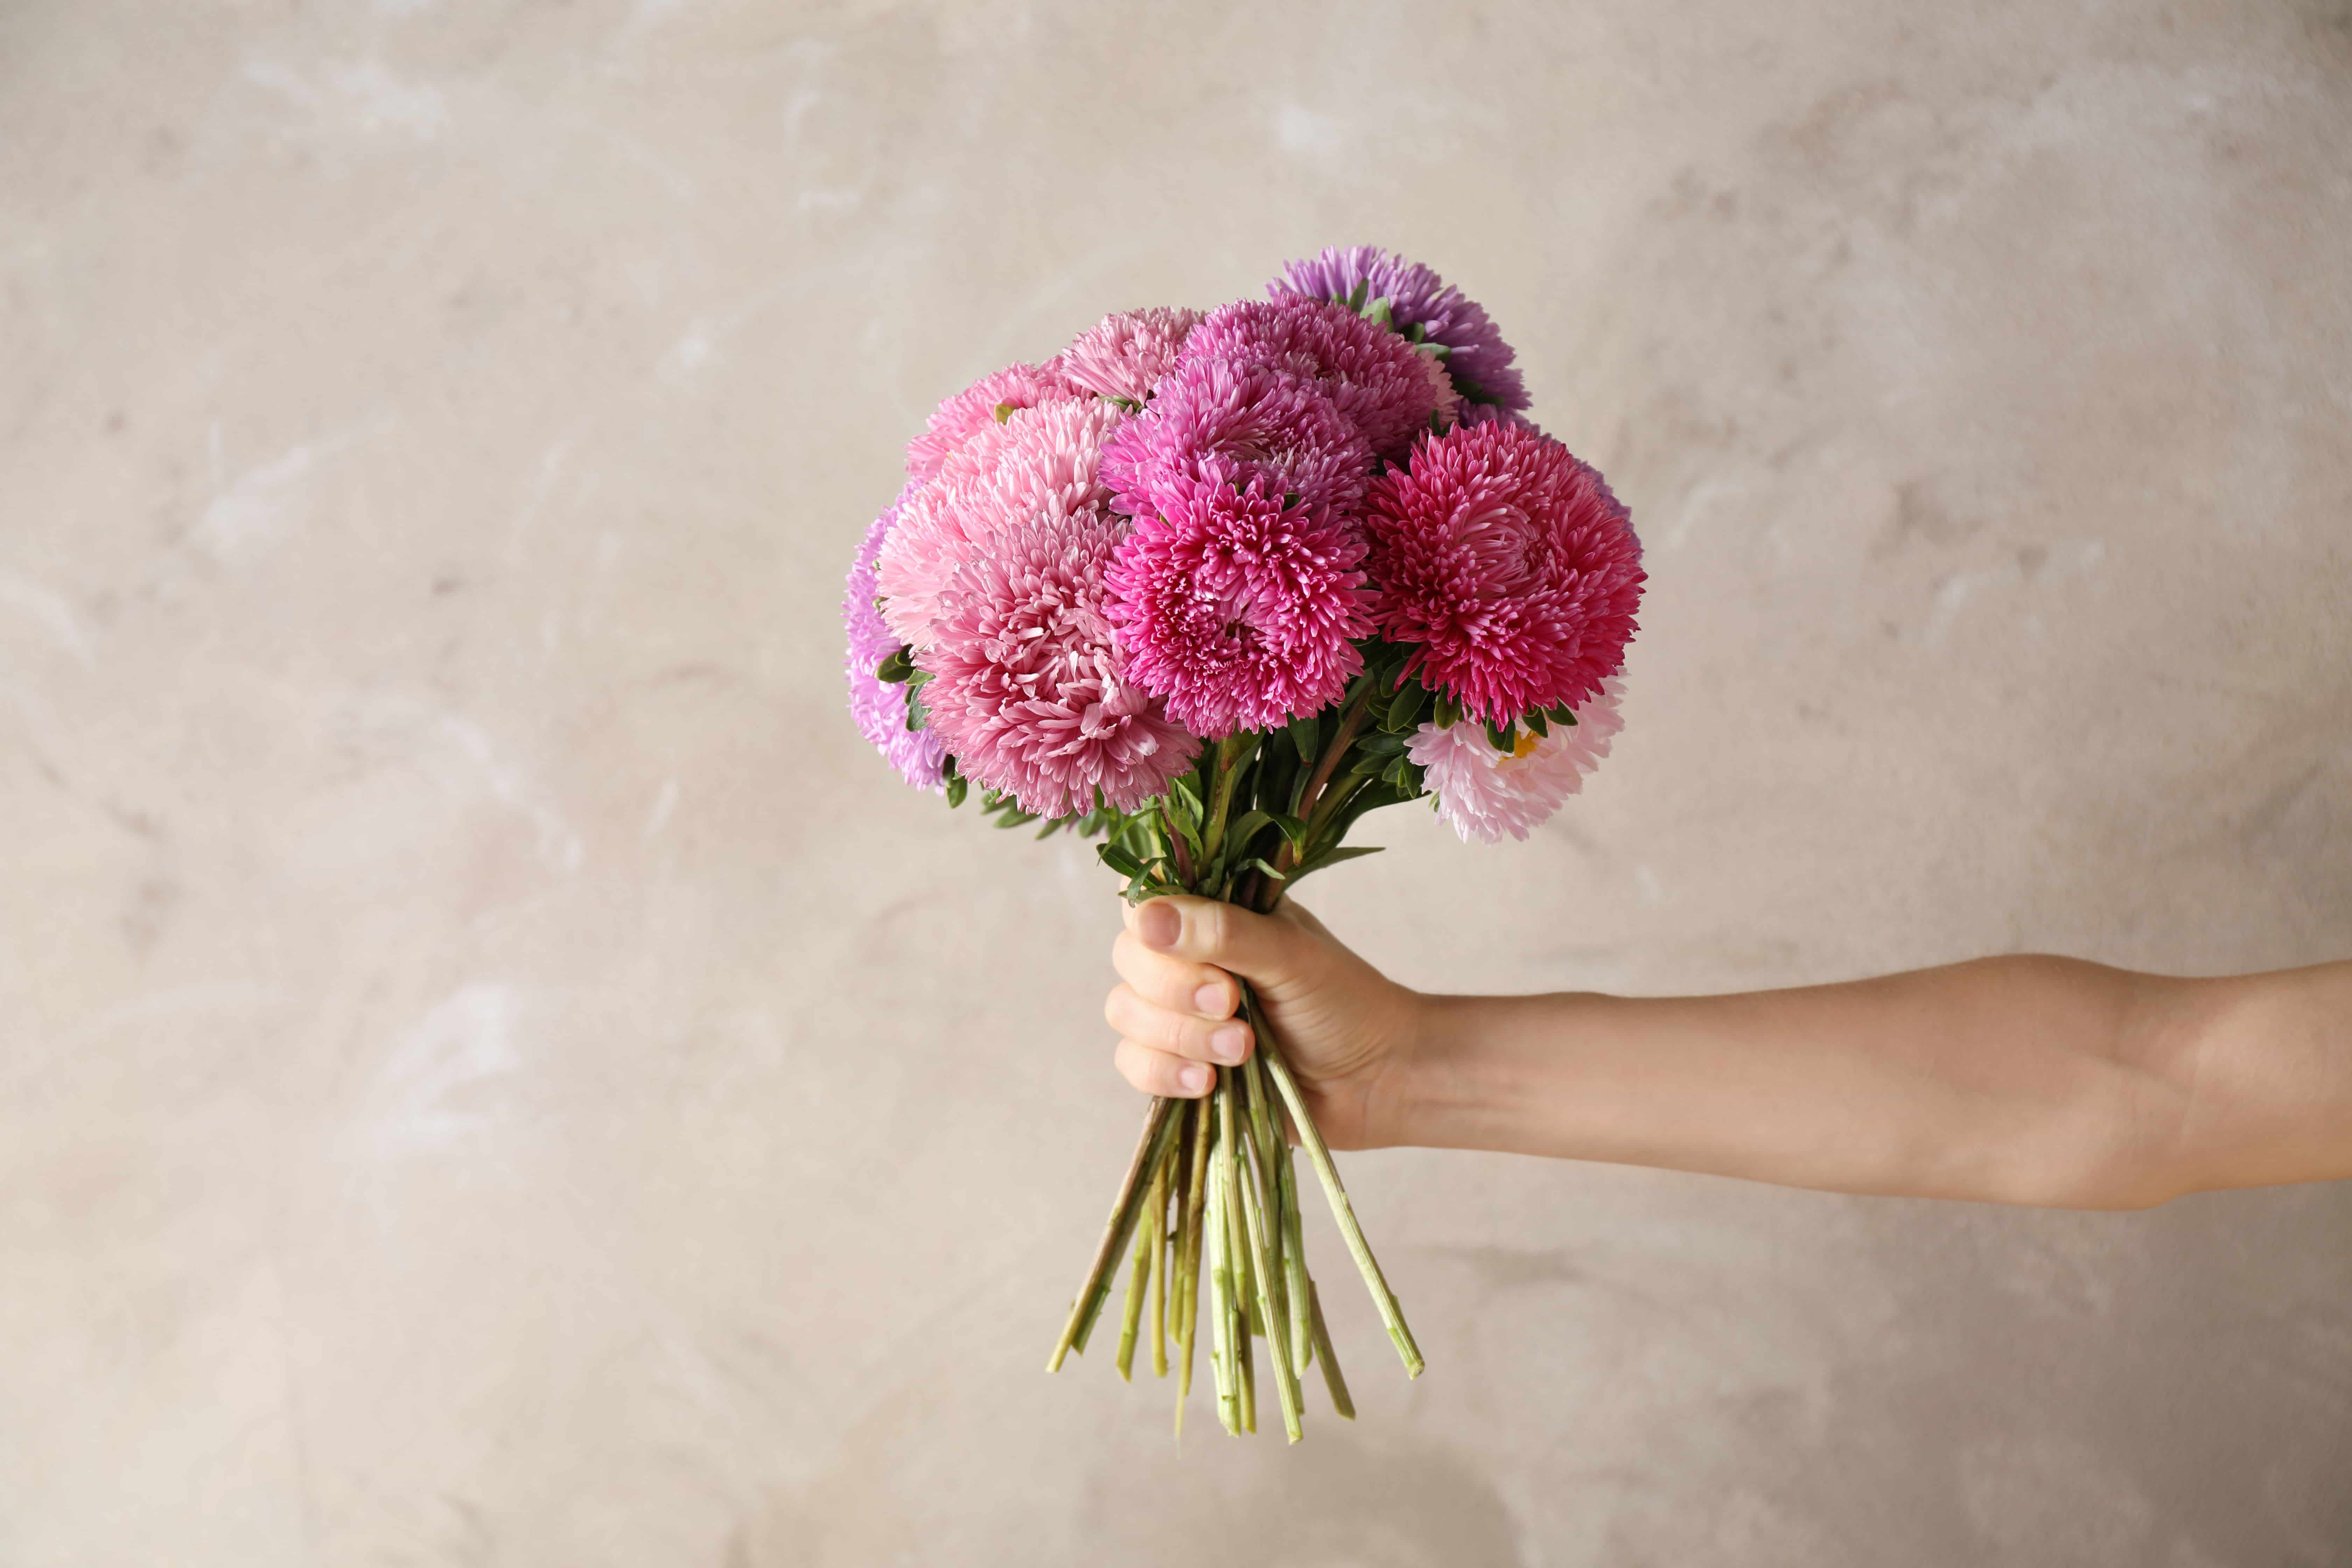 Woman holding bouquet of beautiful aster flowers on beige background, closeup